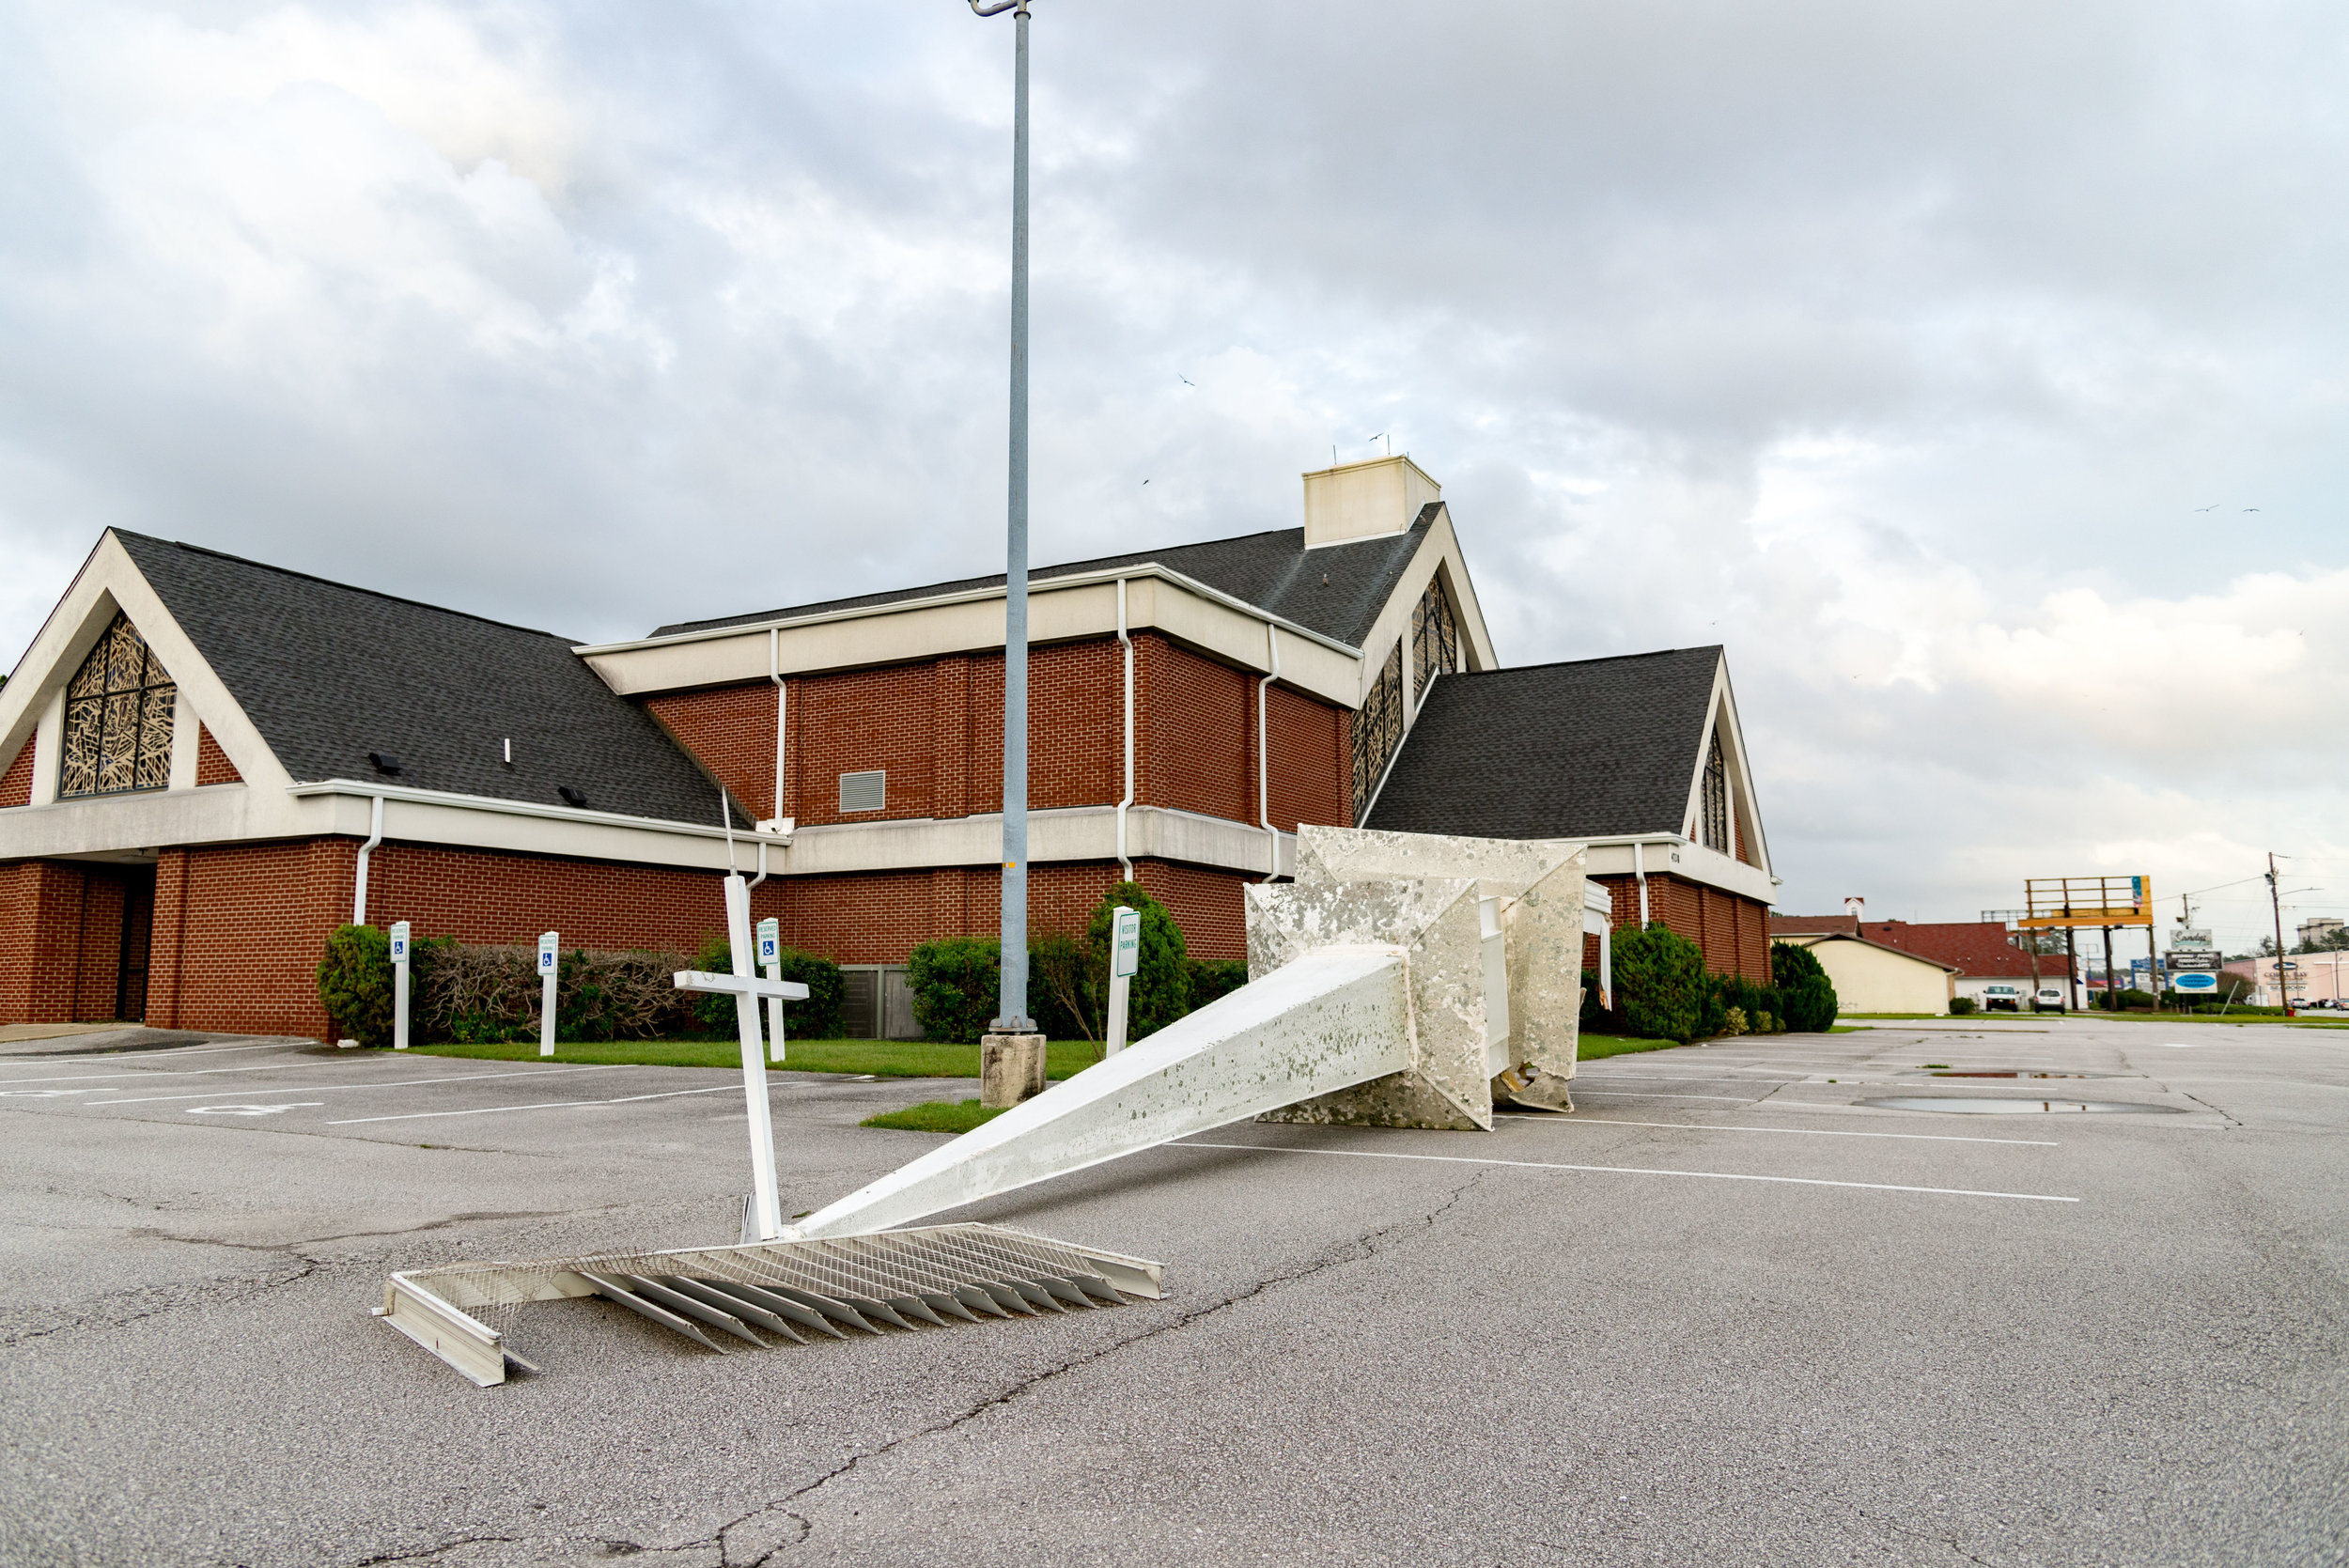 September 16, 2018, Morehead City, NC- The church steeple at Parkview Baptist Church fell during Hurricane Florence.